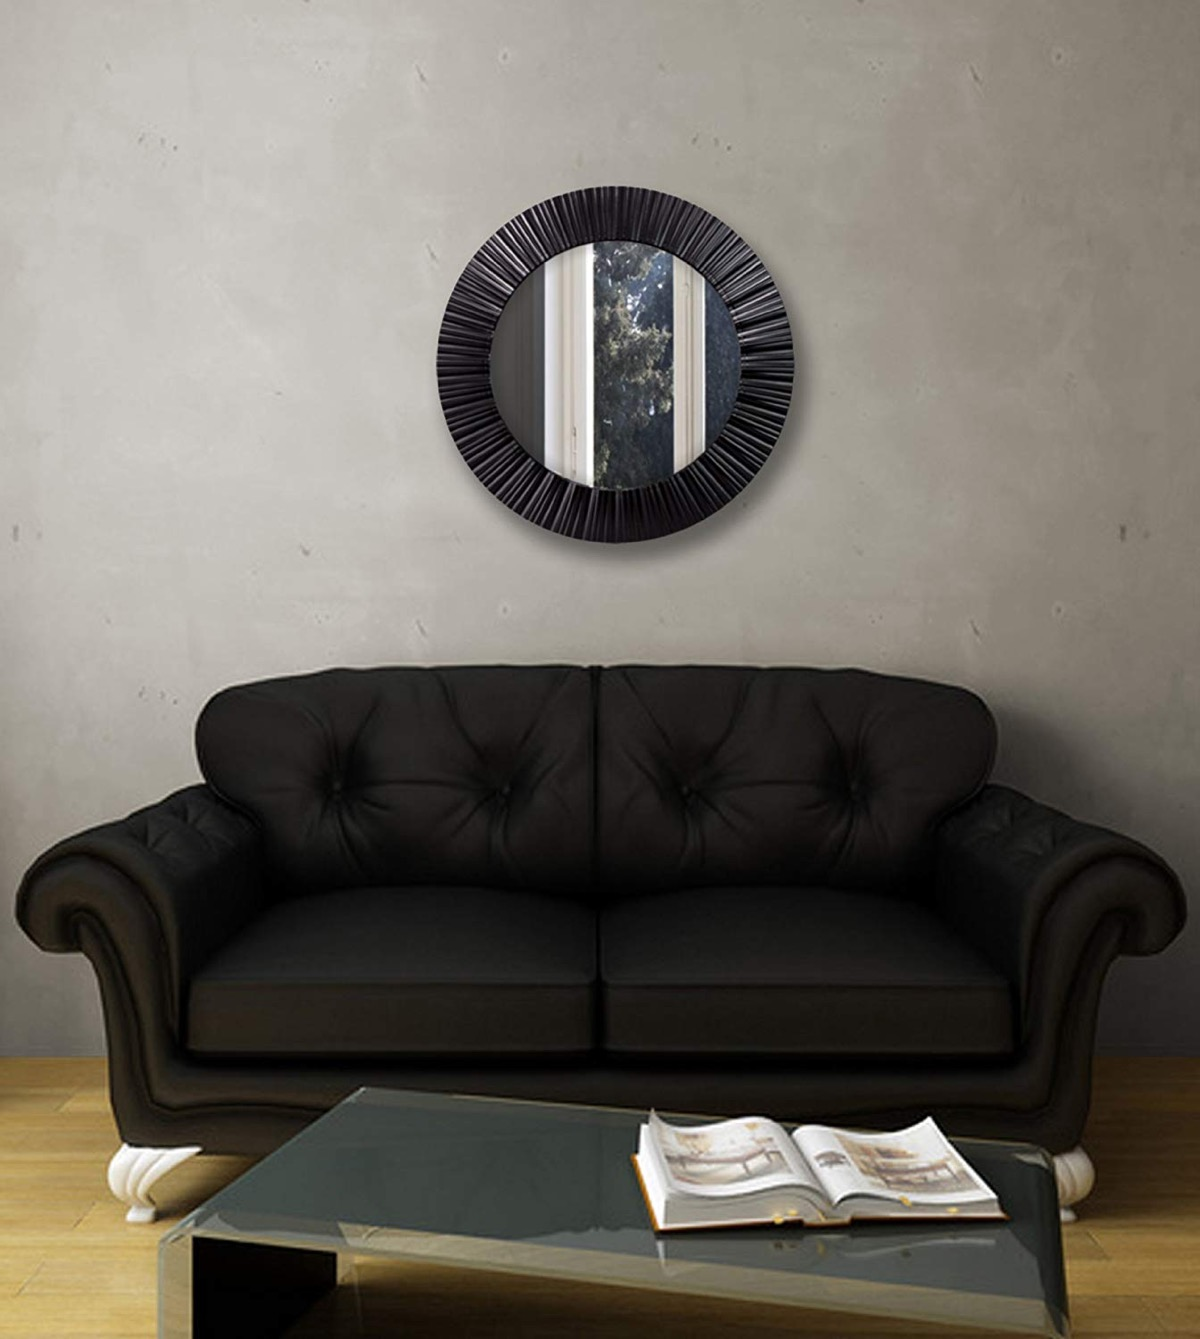 Cheap-Round-Black-Mirror-For-Wall-Circle-Decorative-Mirror-Plastic